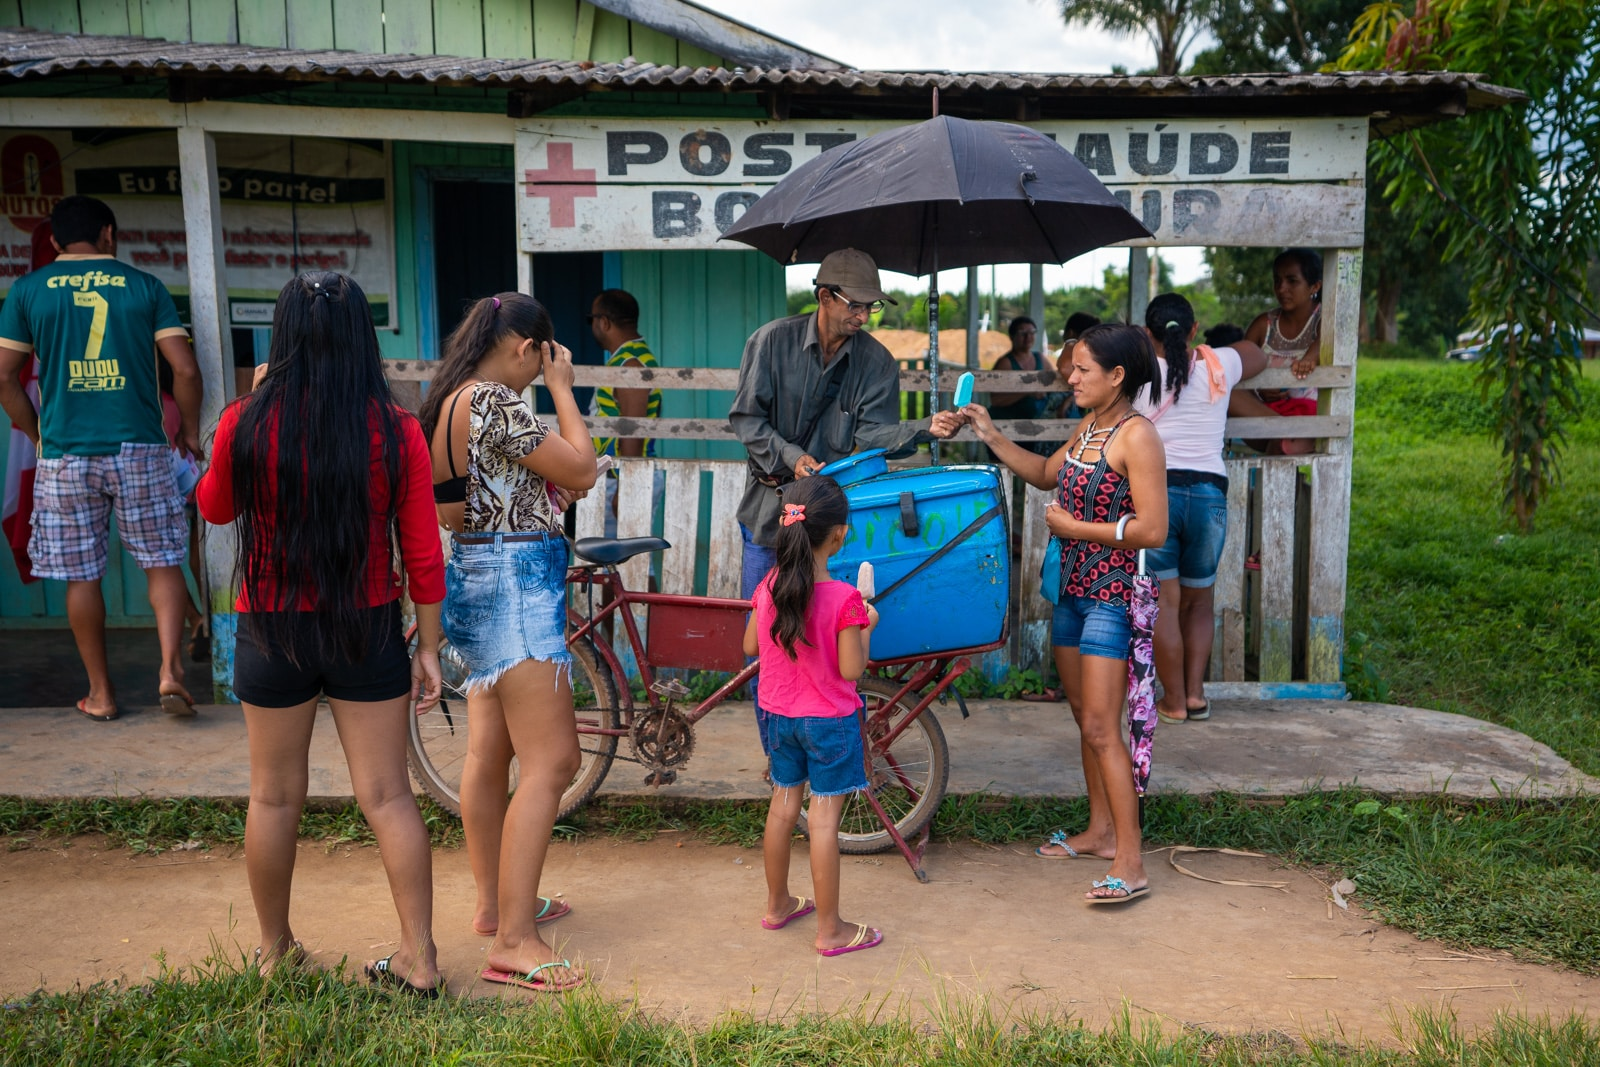 OneSight's mobile eye care clinic in the Brazilian Amazon - Alex selling popsicles - Lost With Purpose travel blog